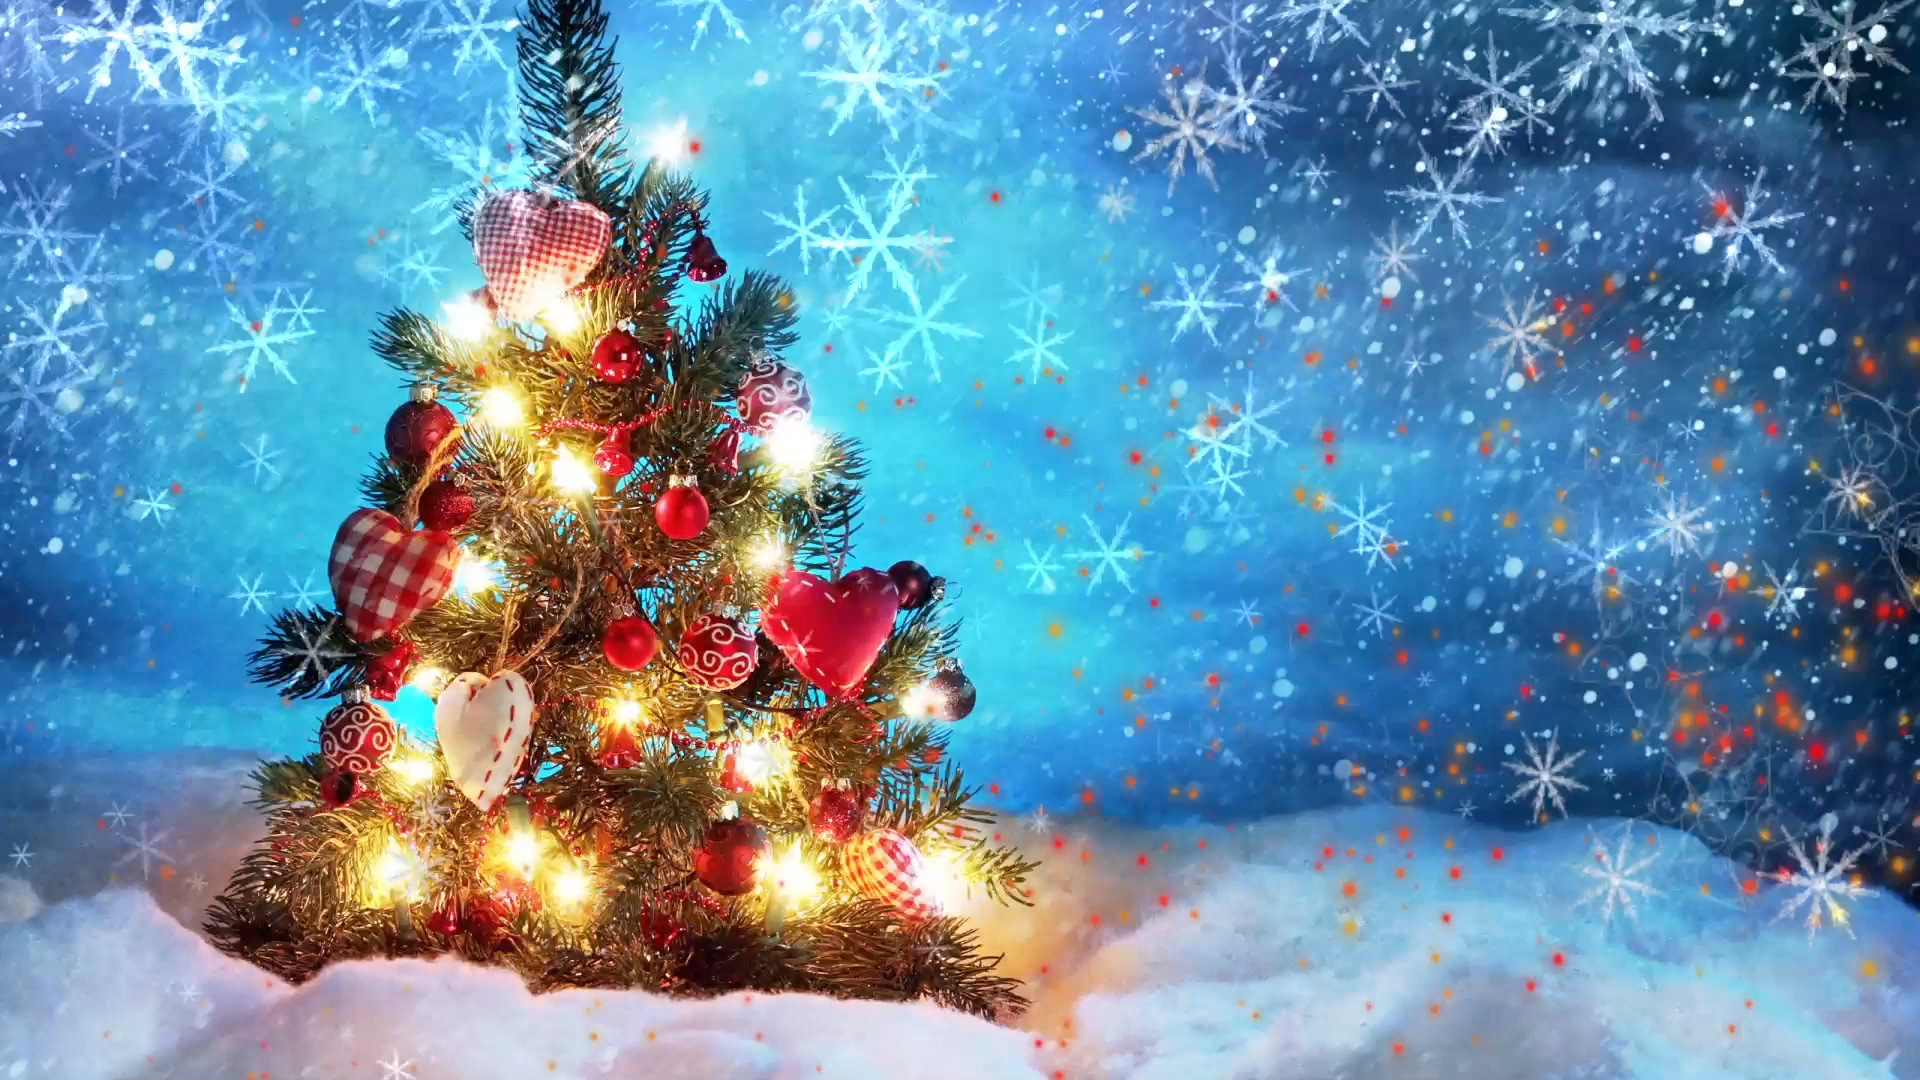 Holiday Video Menu Background With Christmas Tree And Snowflakes Free Video Footage